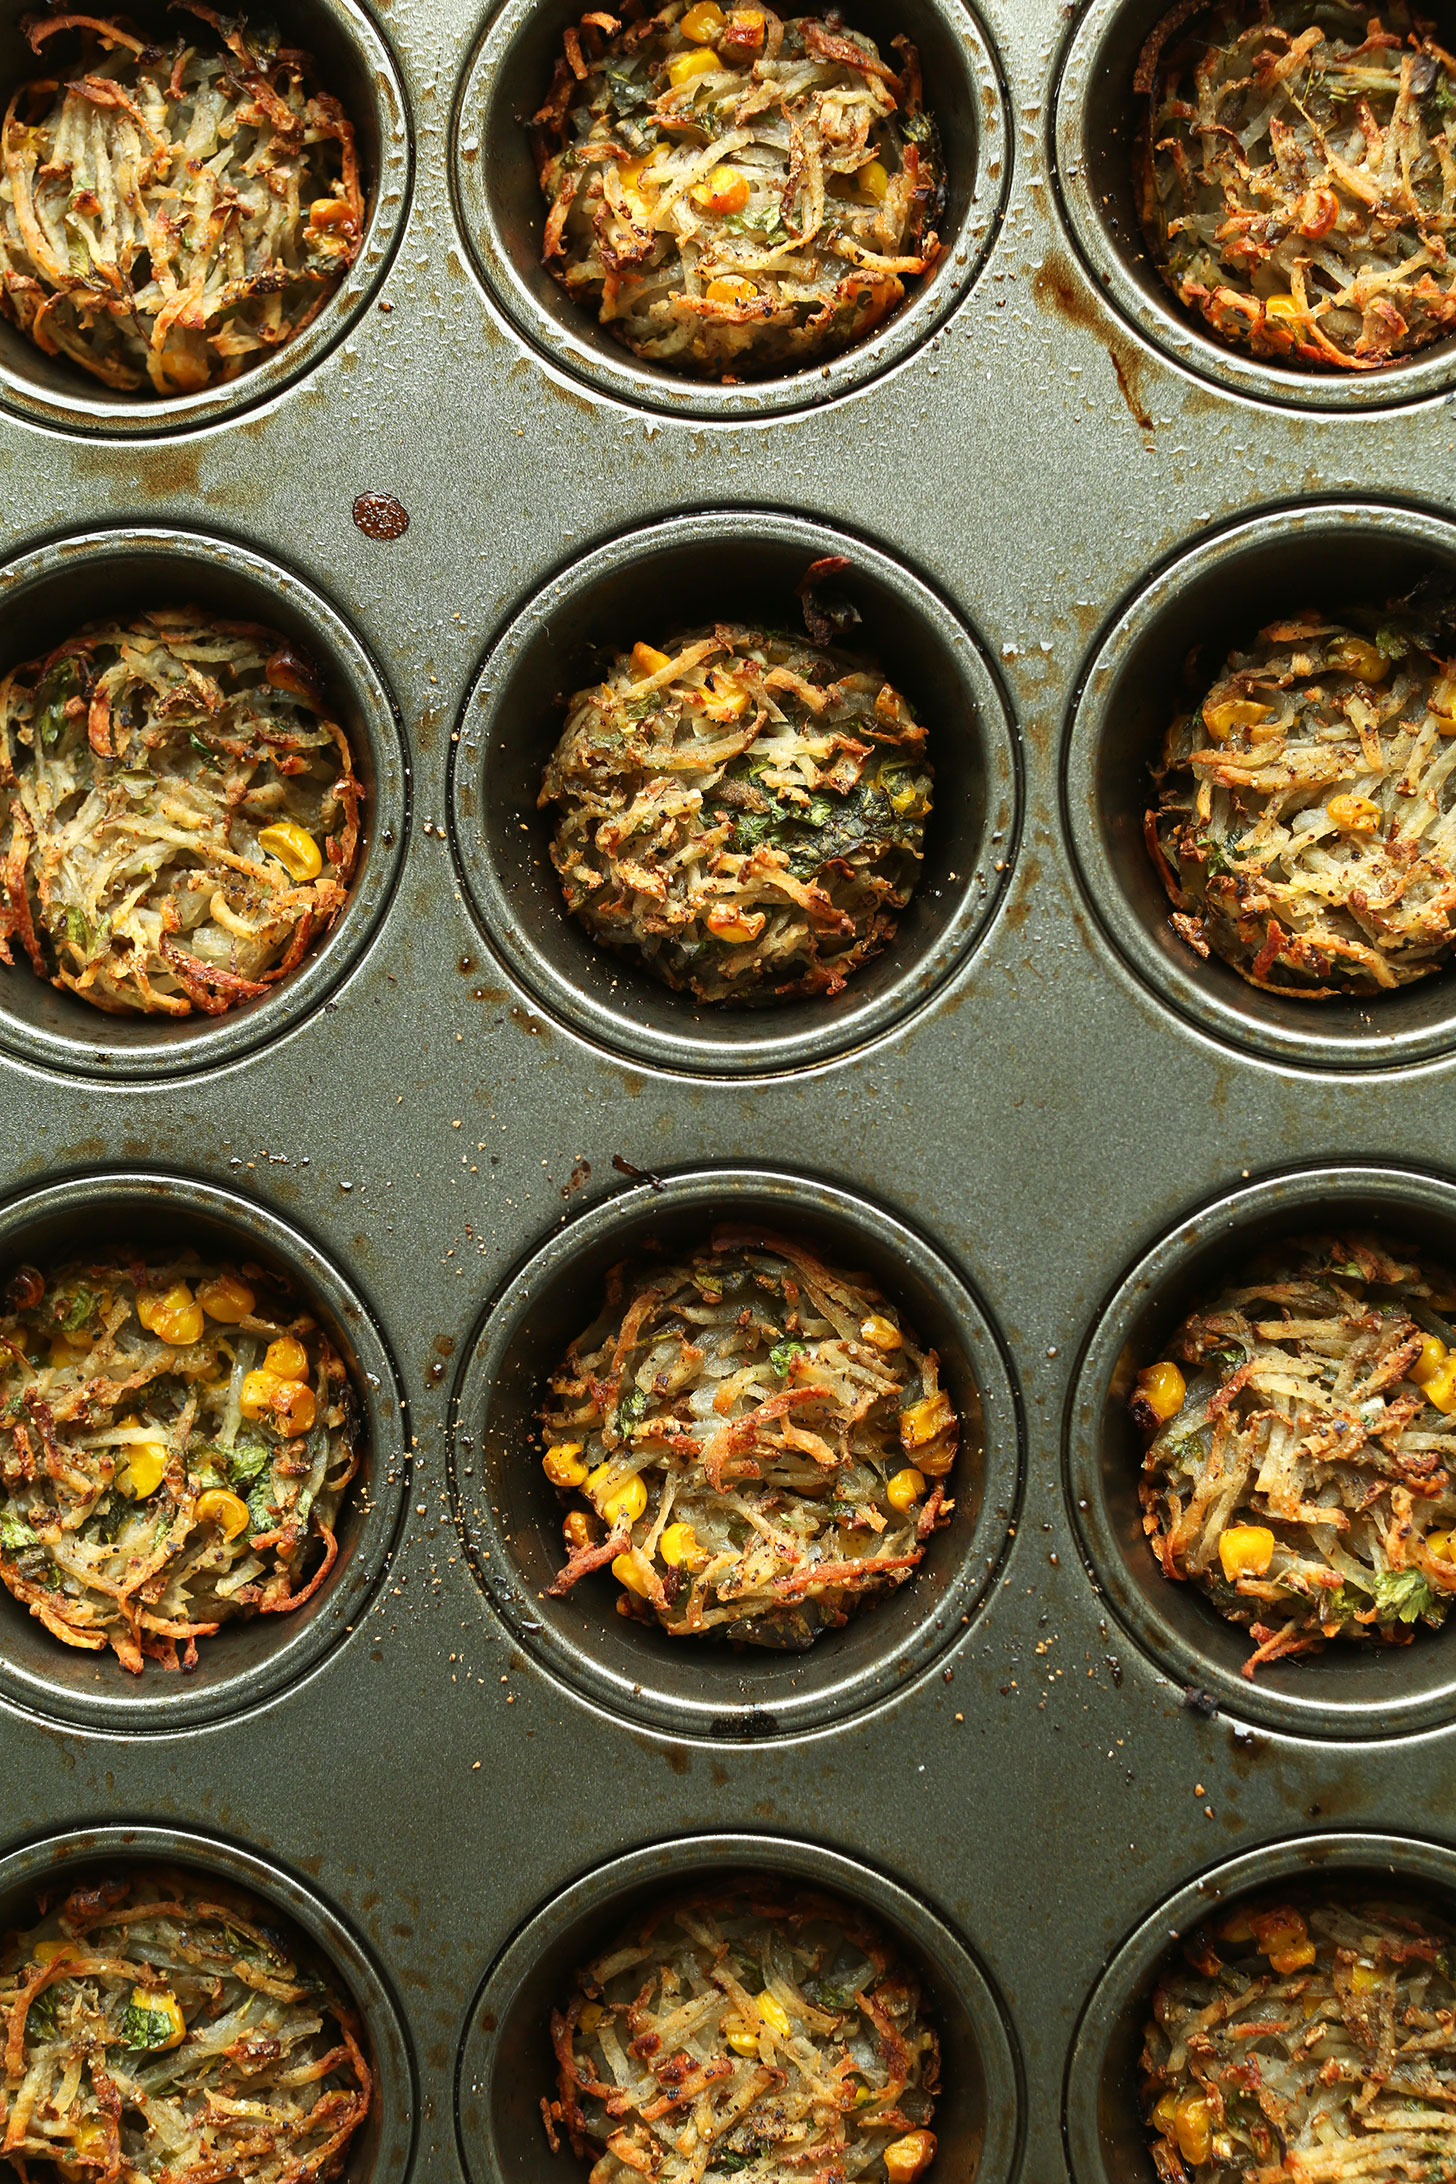 Muffin tin filled with hashbrown mixture for making Crispy Baked Hashbrowns